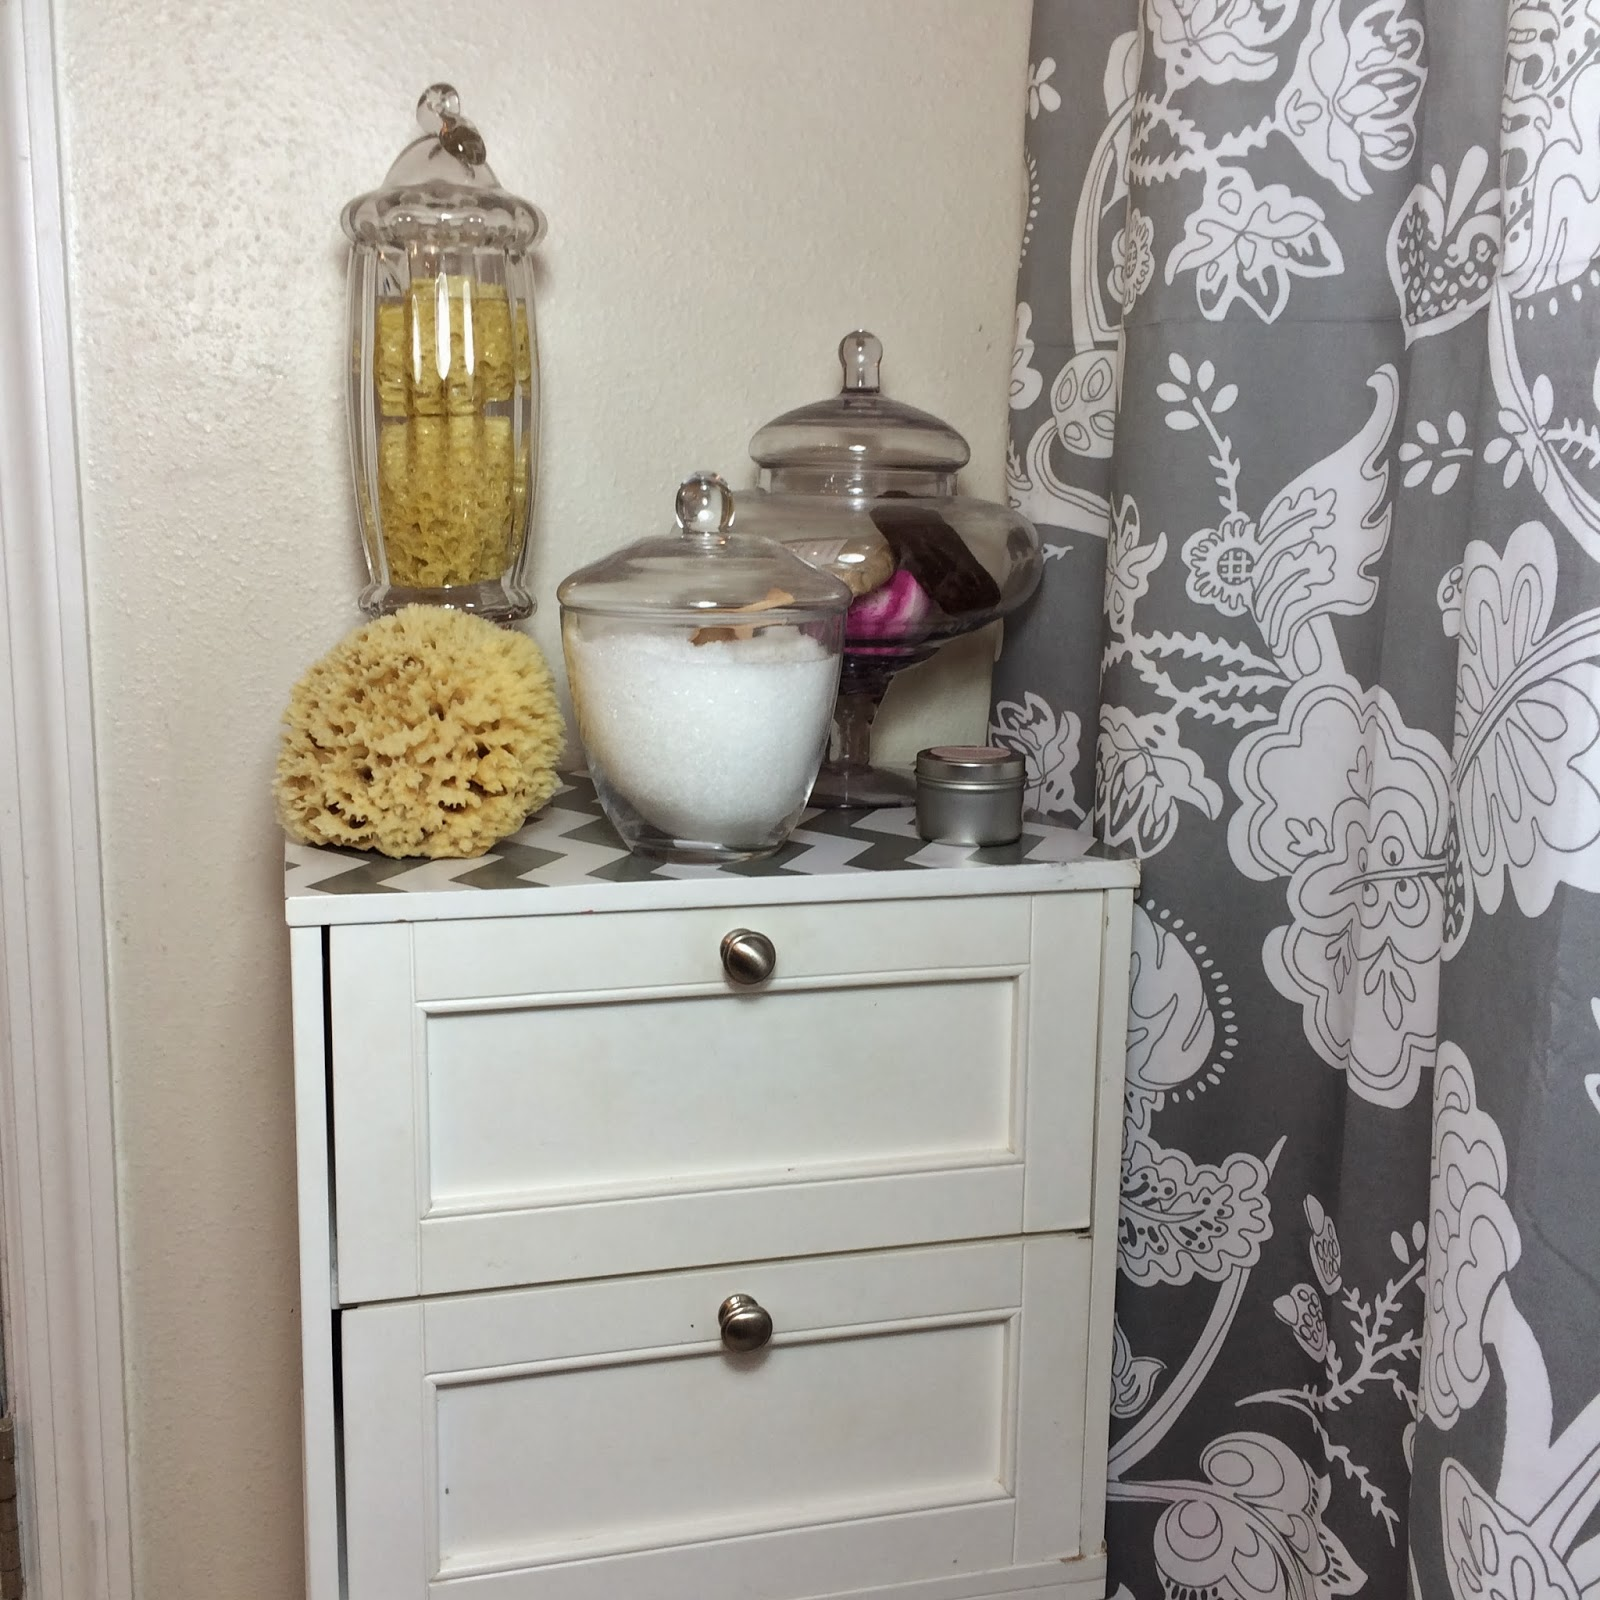 Mini Bathroom Update With Apothecary Jars